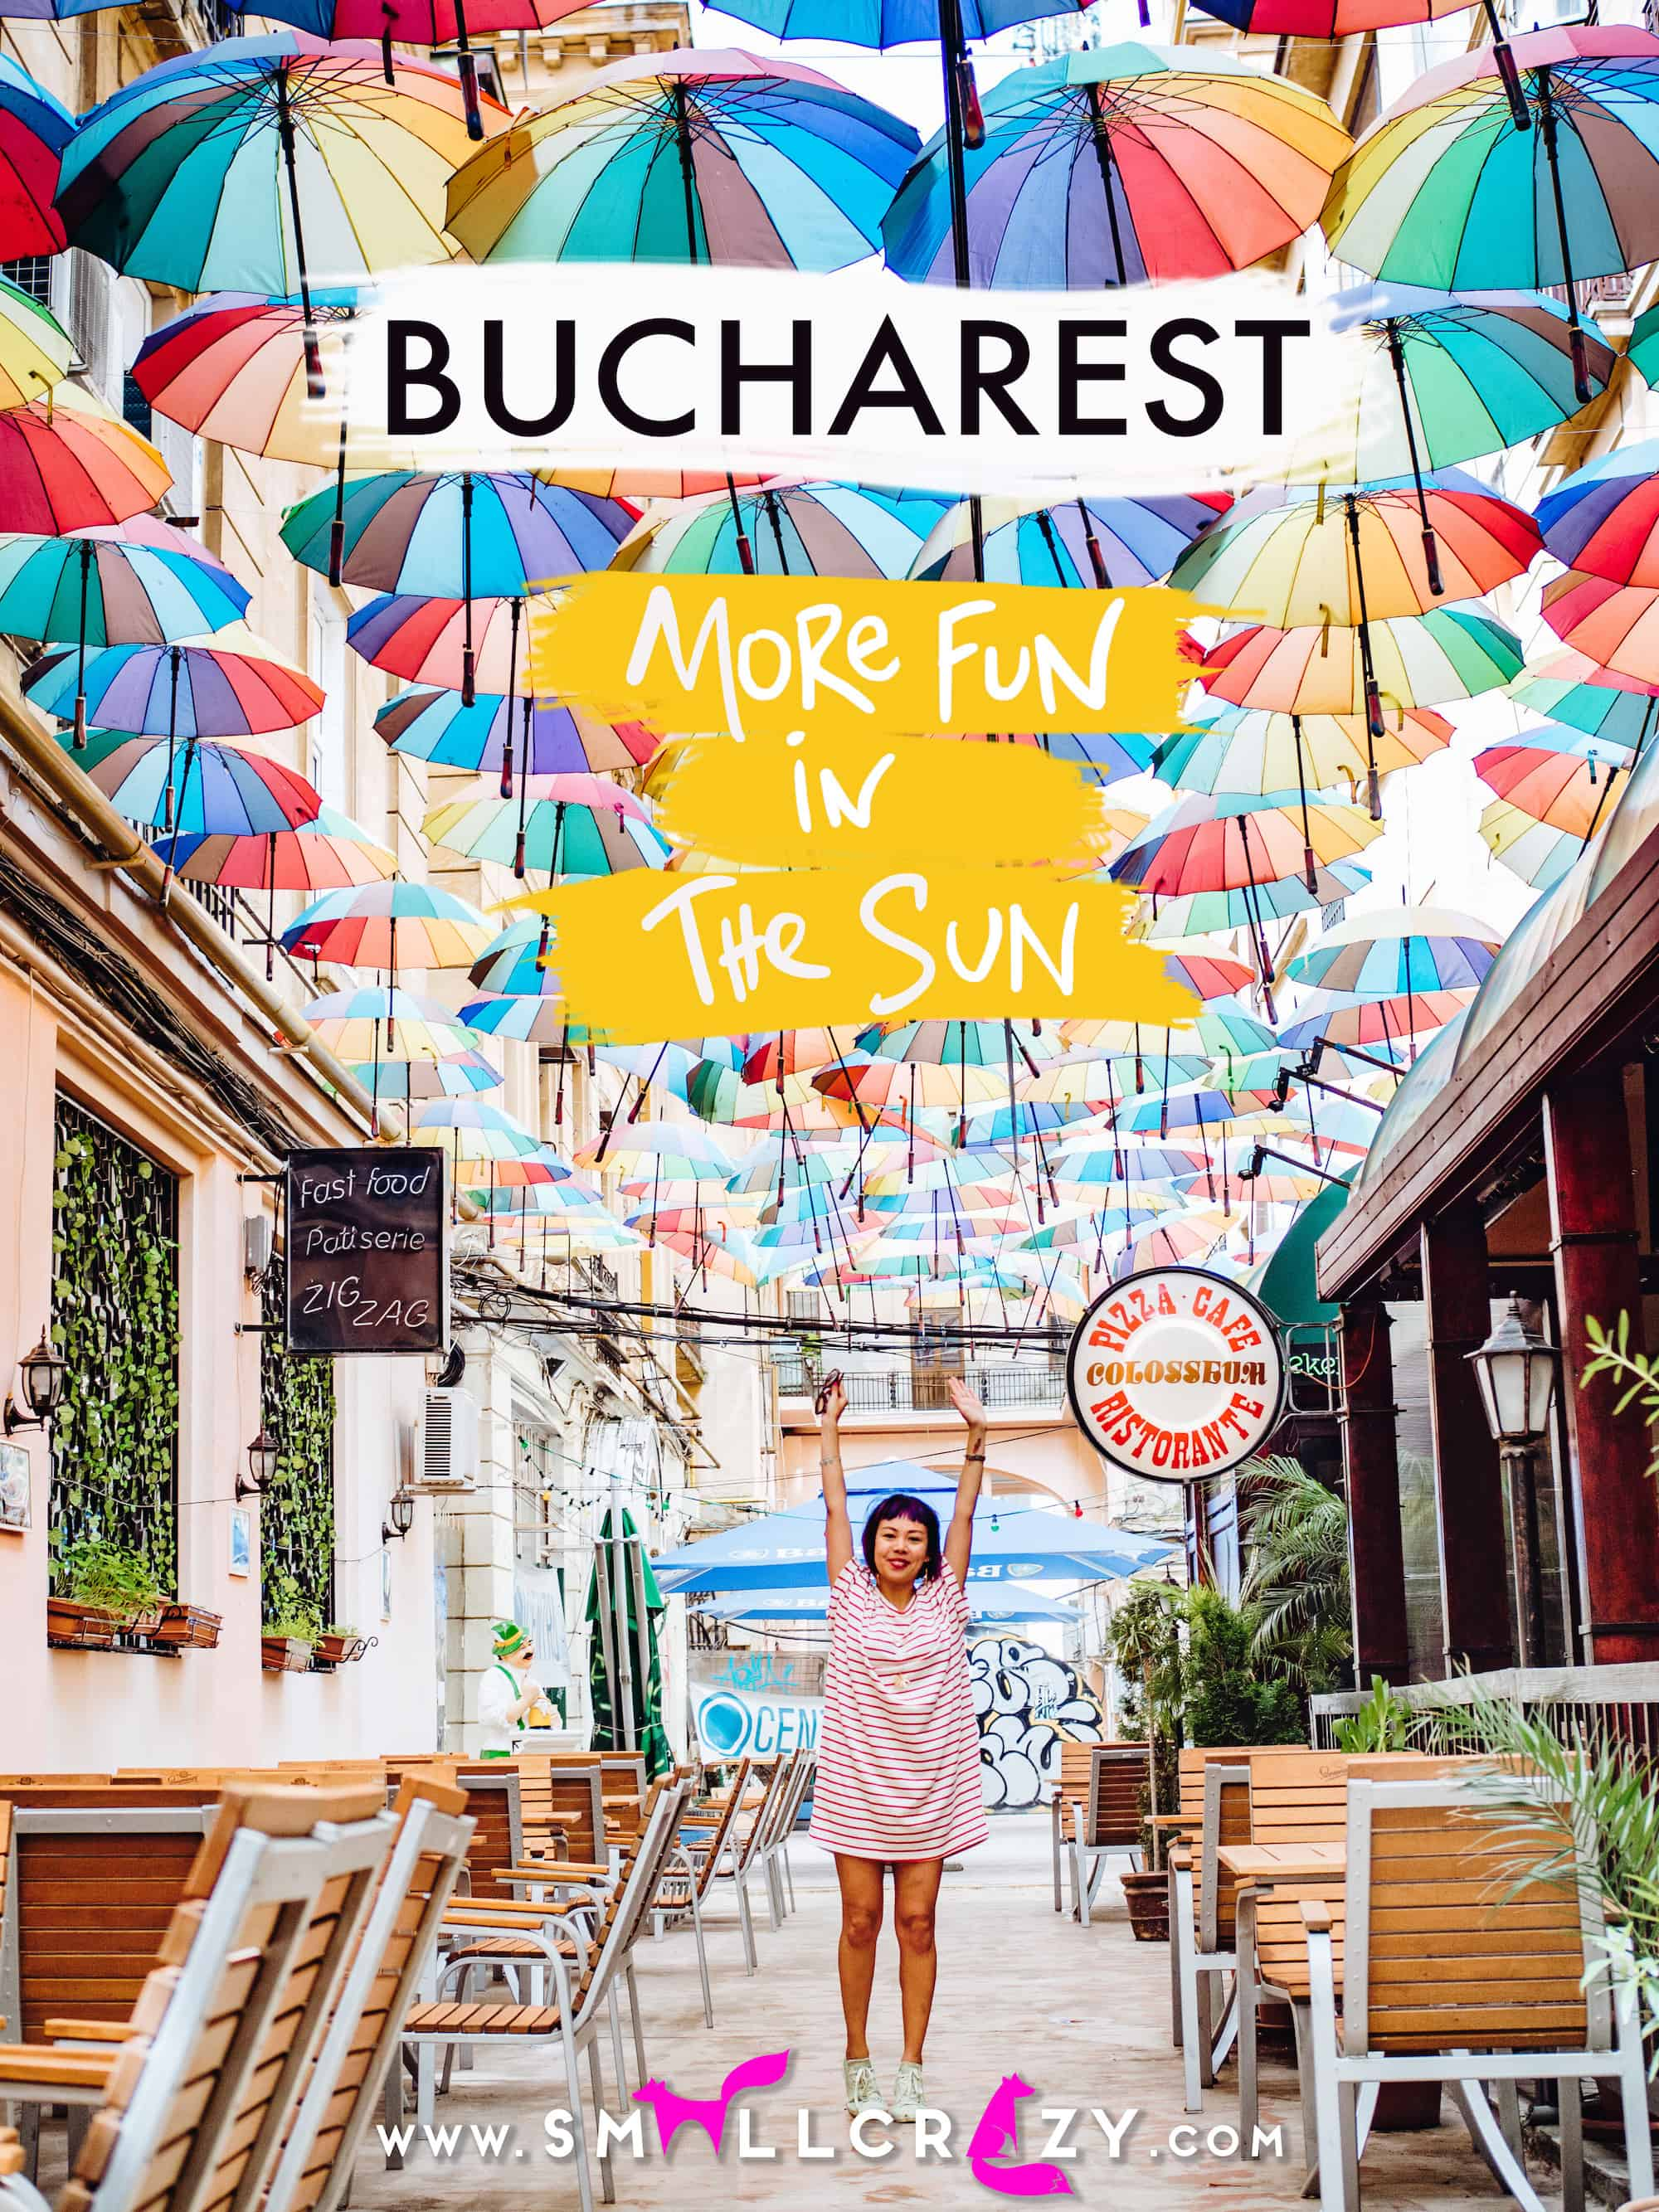 Bucharest is more fun in the summertime. Read about what I did on my third visit to the city, this time in the summer, and why I now LOVE Bucharest!